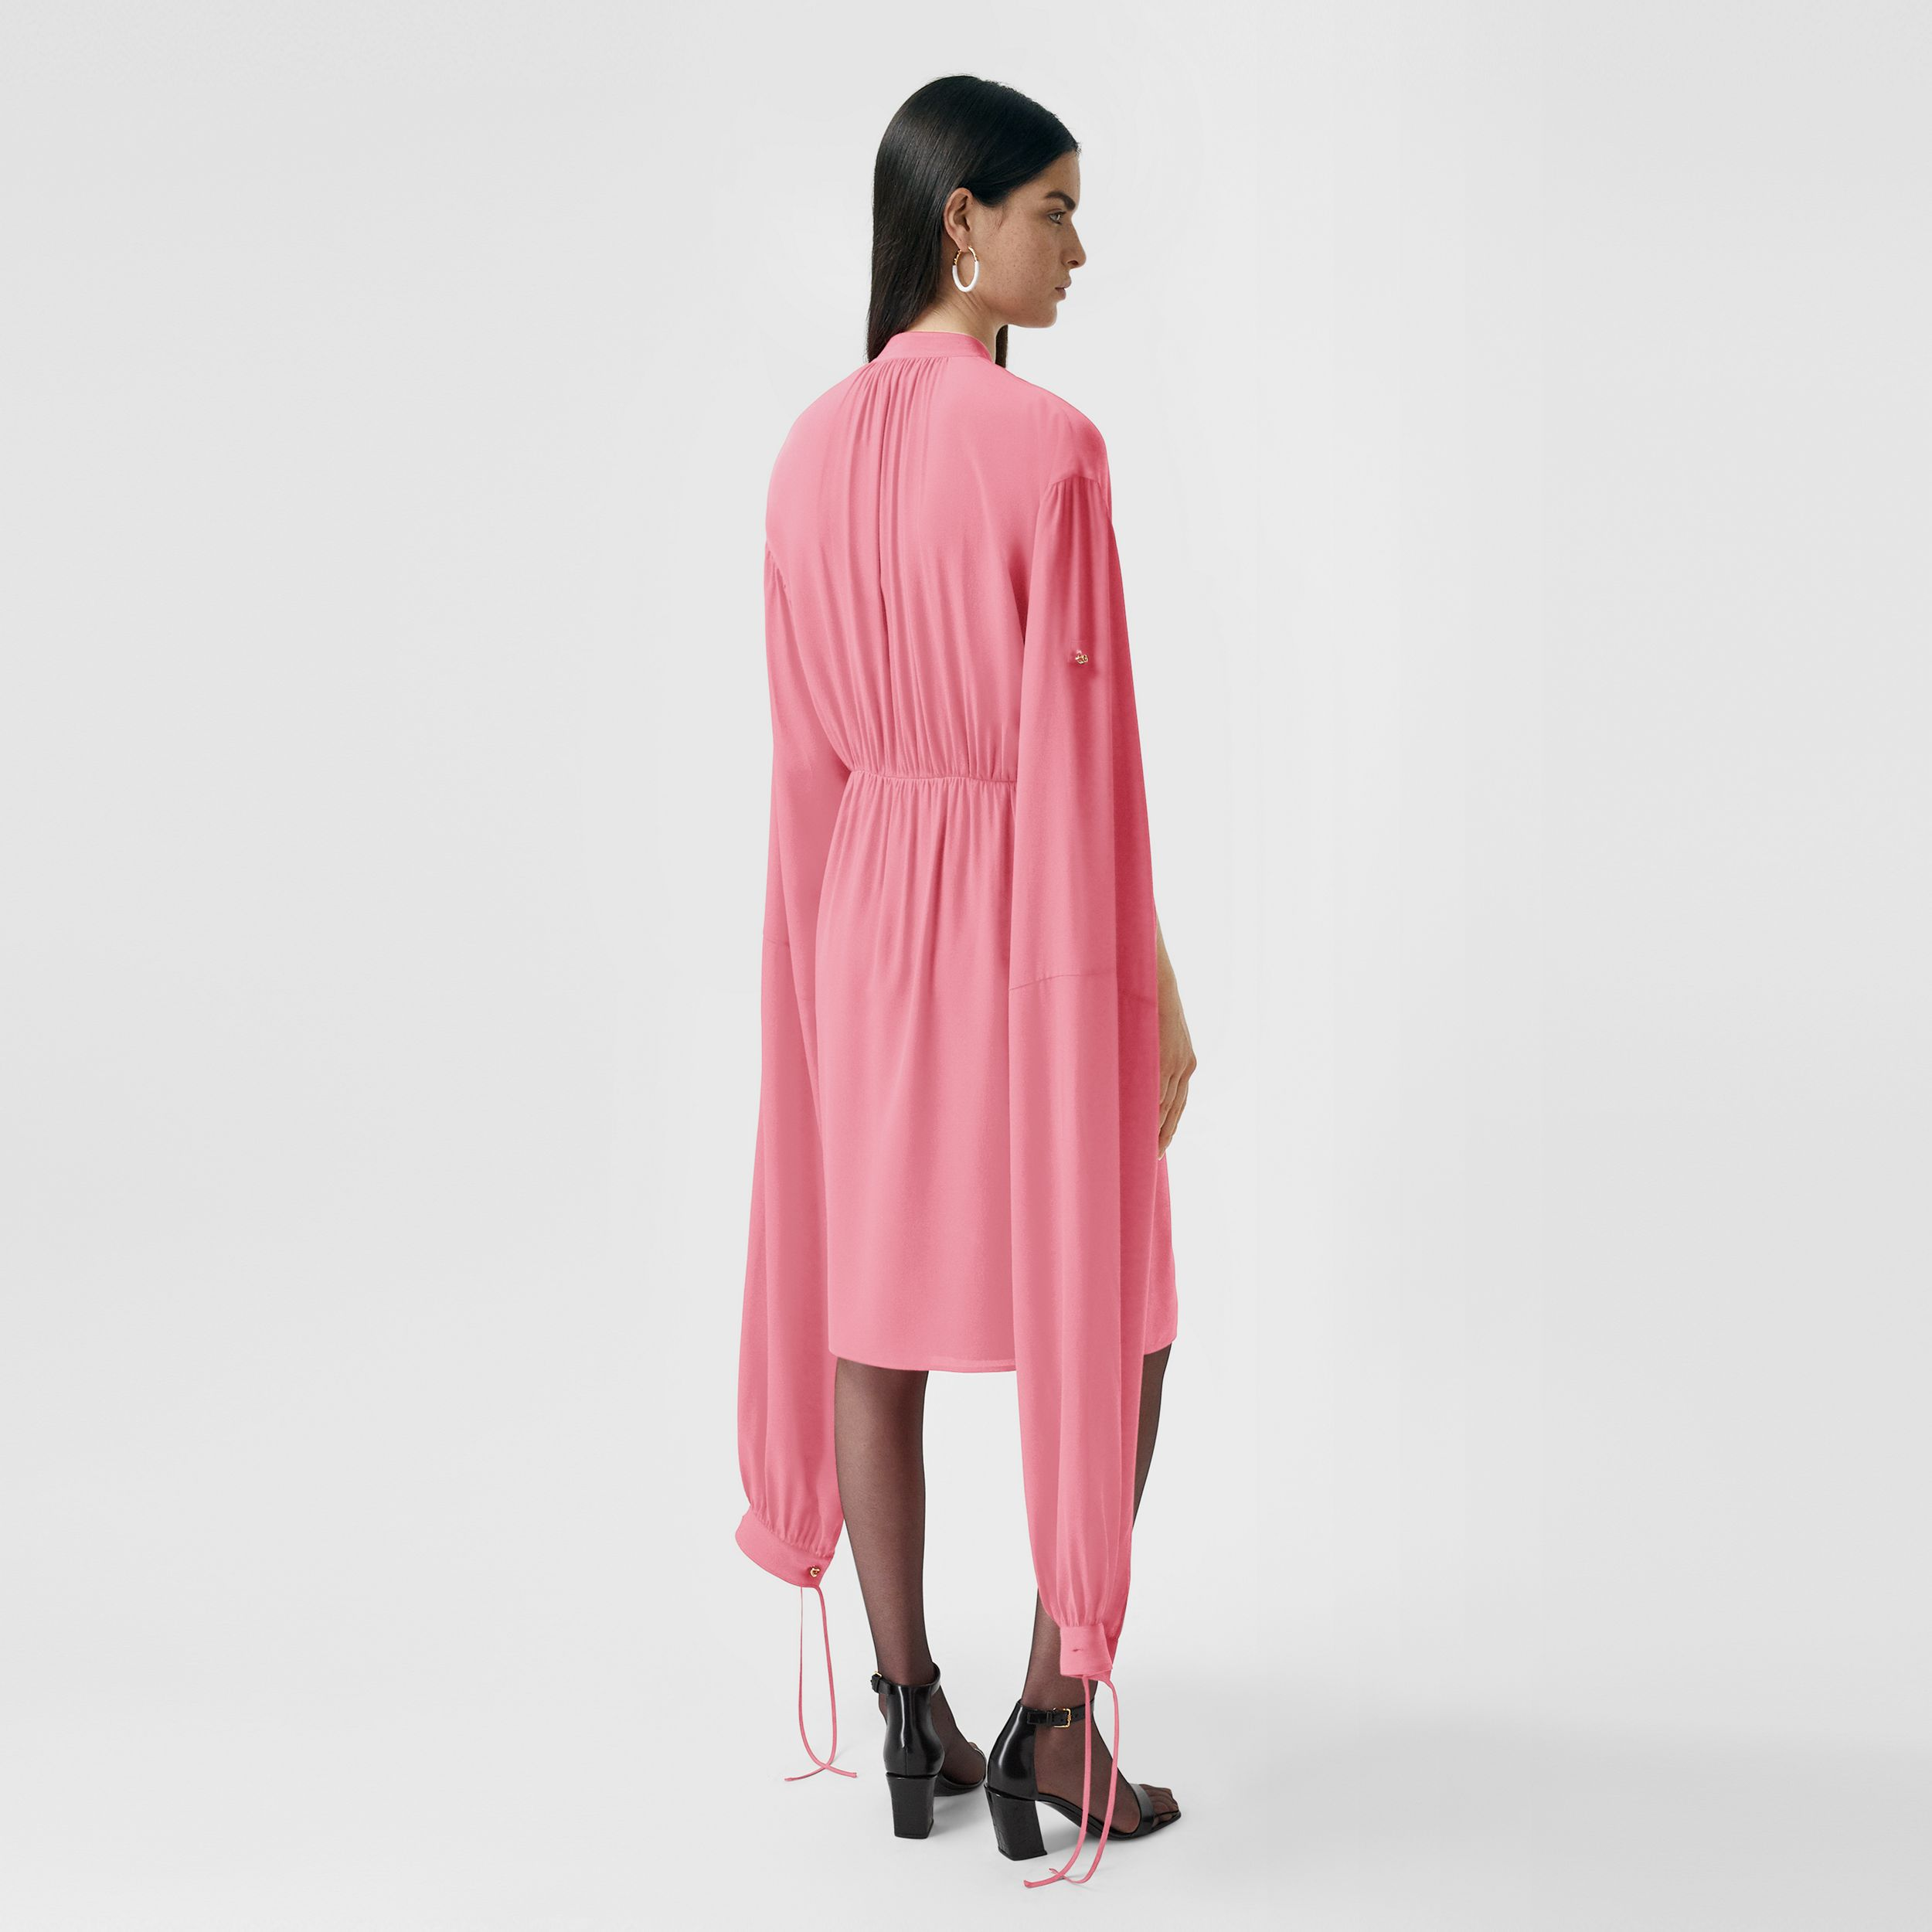 Loop-back Sleeve Silk Crepe De Chine Dress in Bubblegum Pink - Women | Burberry Australia - 3